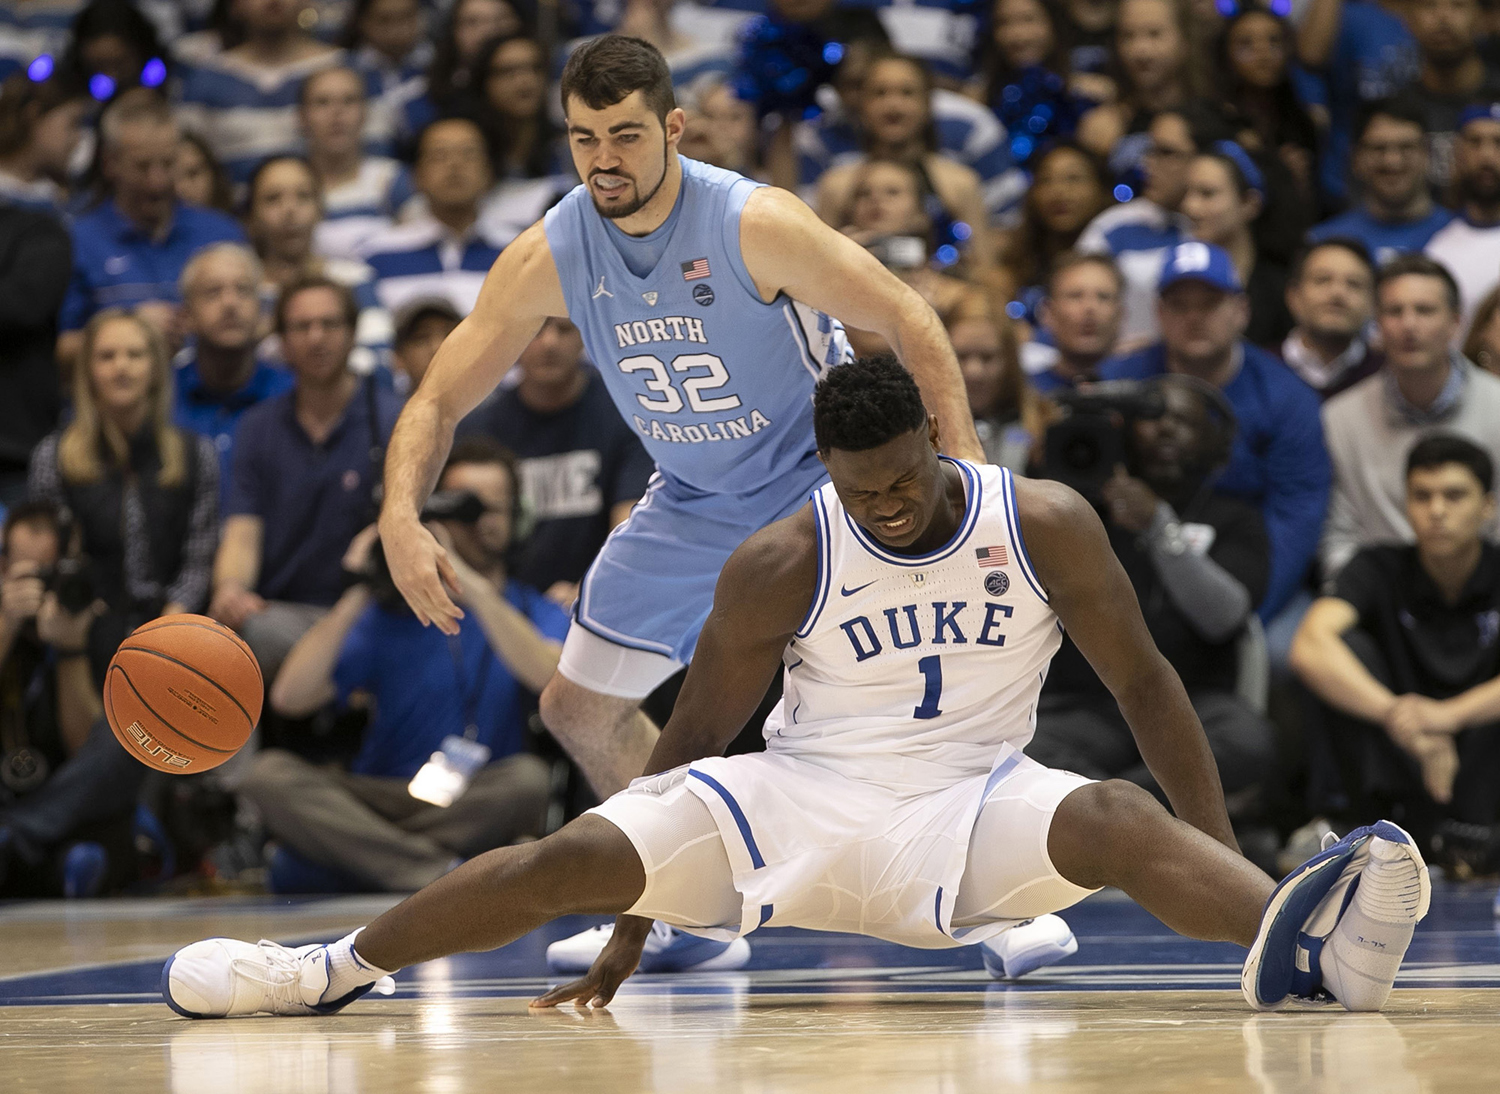 Duke's Zion Williamson (1) falls to the court under North Carolina's Luke Maye (32), injuring himself and damaging his shoe during the first half of the game on Wednesday, Feb. 20 at Cameron Indoor Stadium in Durham, N.C.